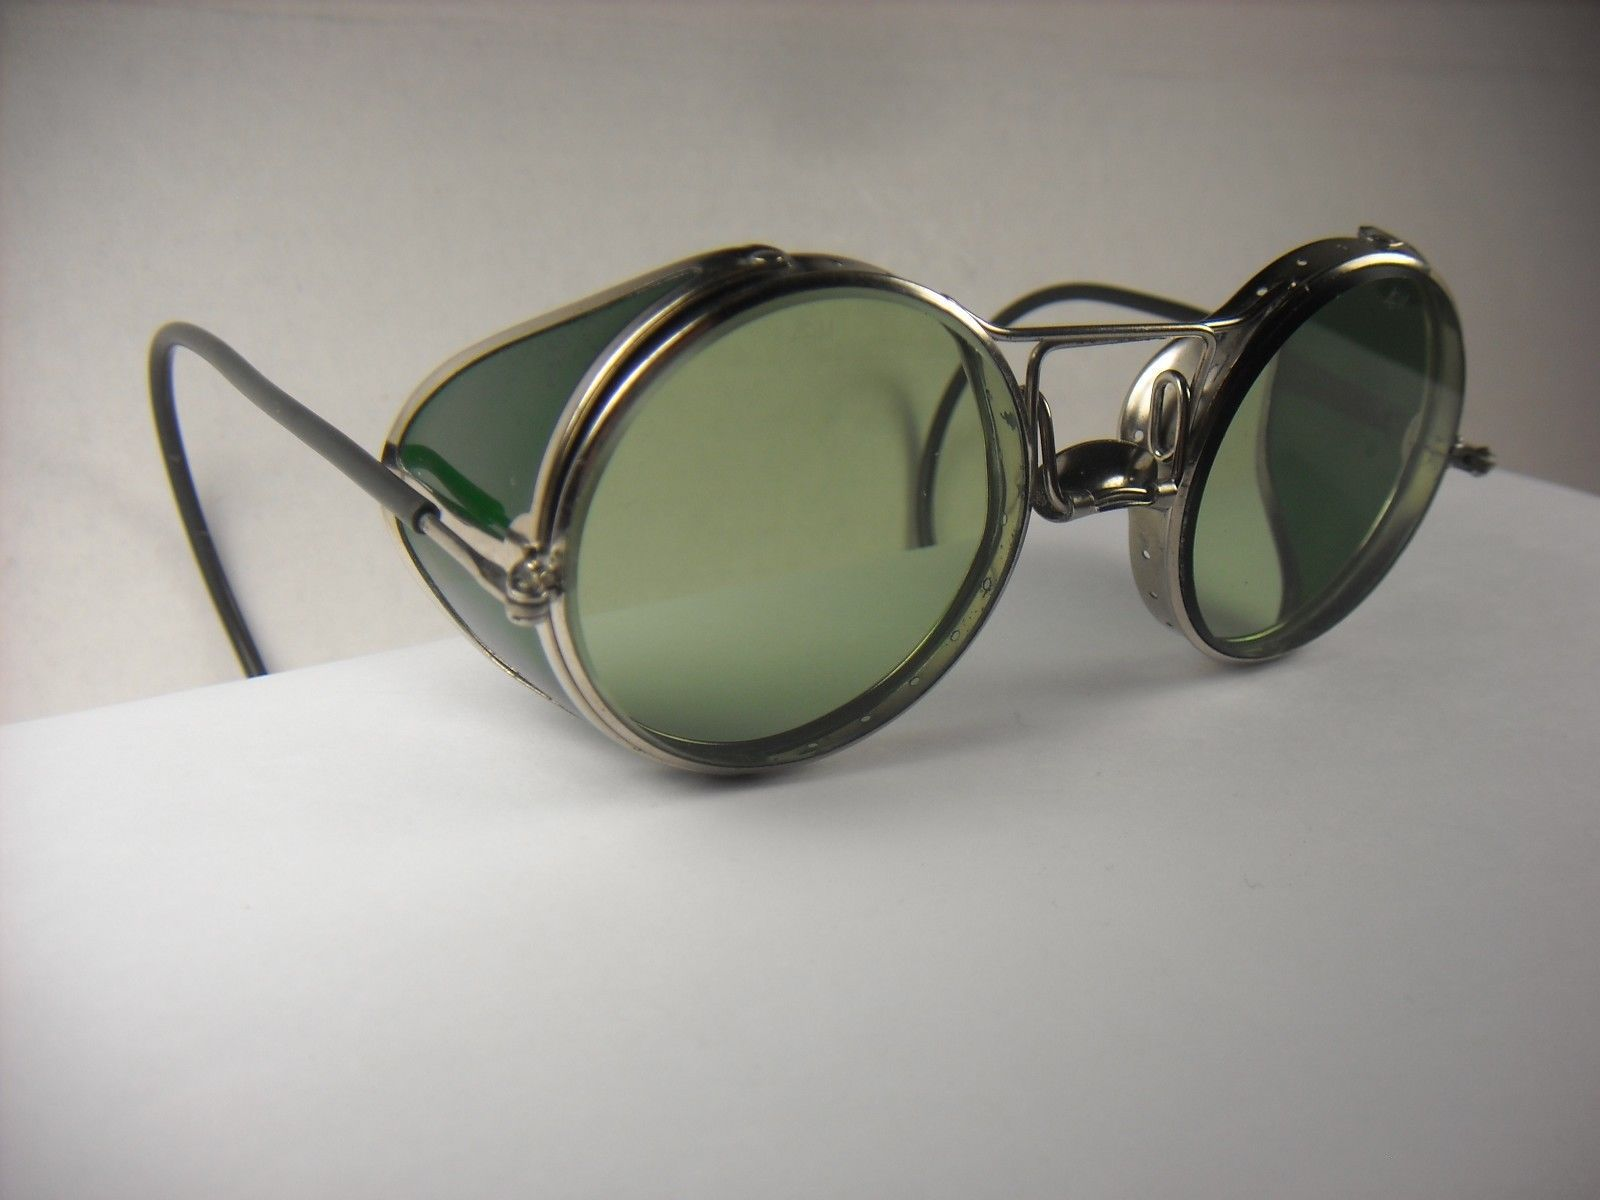 eac10199f67 Vintage AO safety glasses. Nice! Green lens   side shields. Steampunk  goggles.